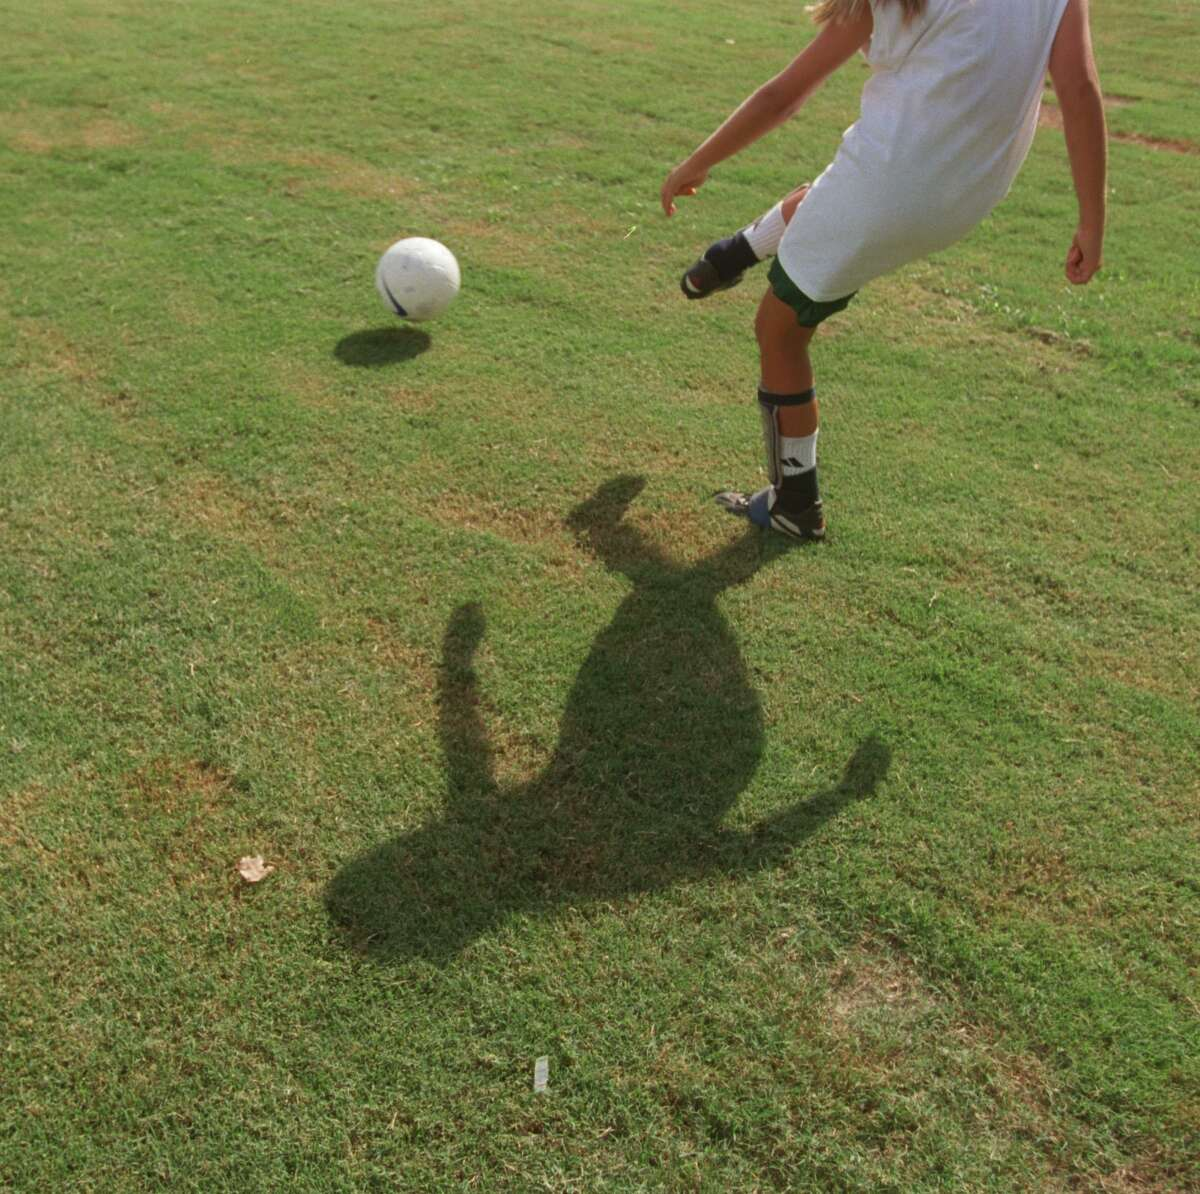 (8/26/99) With the sun beating down, and casting a long, hot shadow, Mary Elizabeth Donovan, 11, kicks a soccer ball during practice to her teammate, Carolyn Cohen, 11, Thursday afternoon at a West University soccer field. The girls are on the West U Express, under 12 soccer team. (Karen Warren/Houston Chronicle) HOUCHRON CAPTION (08/27/1999): Practice, practice, practice. Mary Elizabeth Donovan, 11, kicks the ball to a teammate as the West U Express girls soccer team practices Thursday afternoon. The girls, all under 12 years old, took advantage of the weather to go over plays at a soccer field in West University Place.